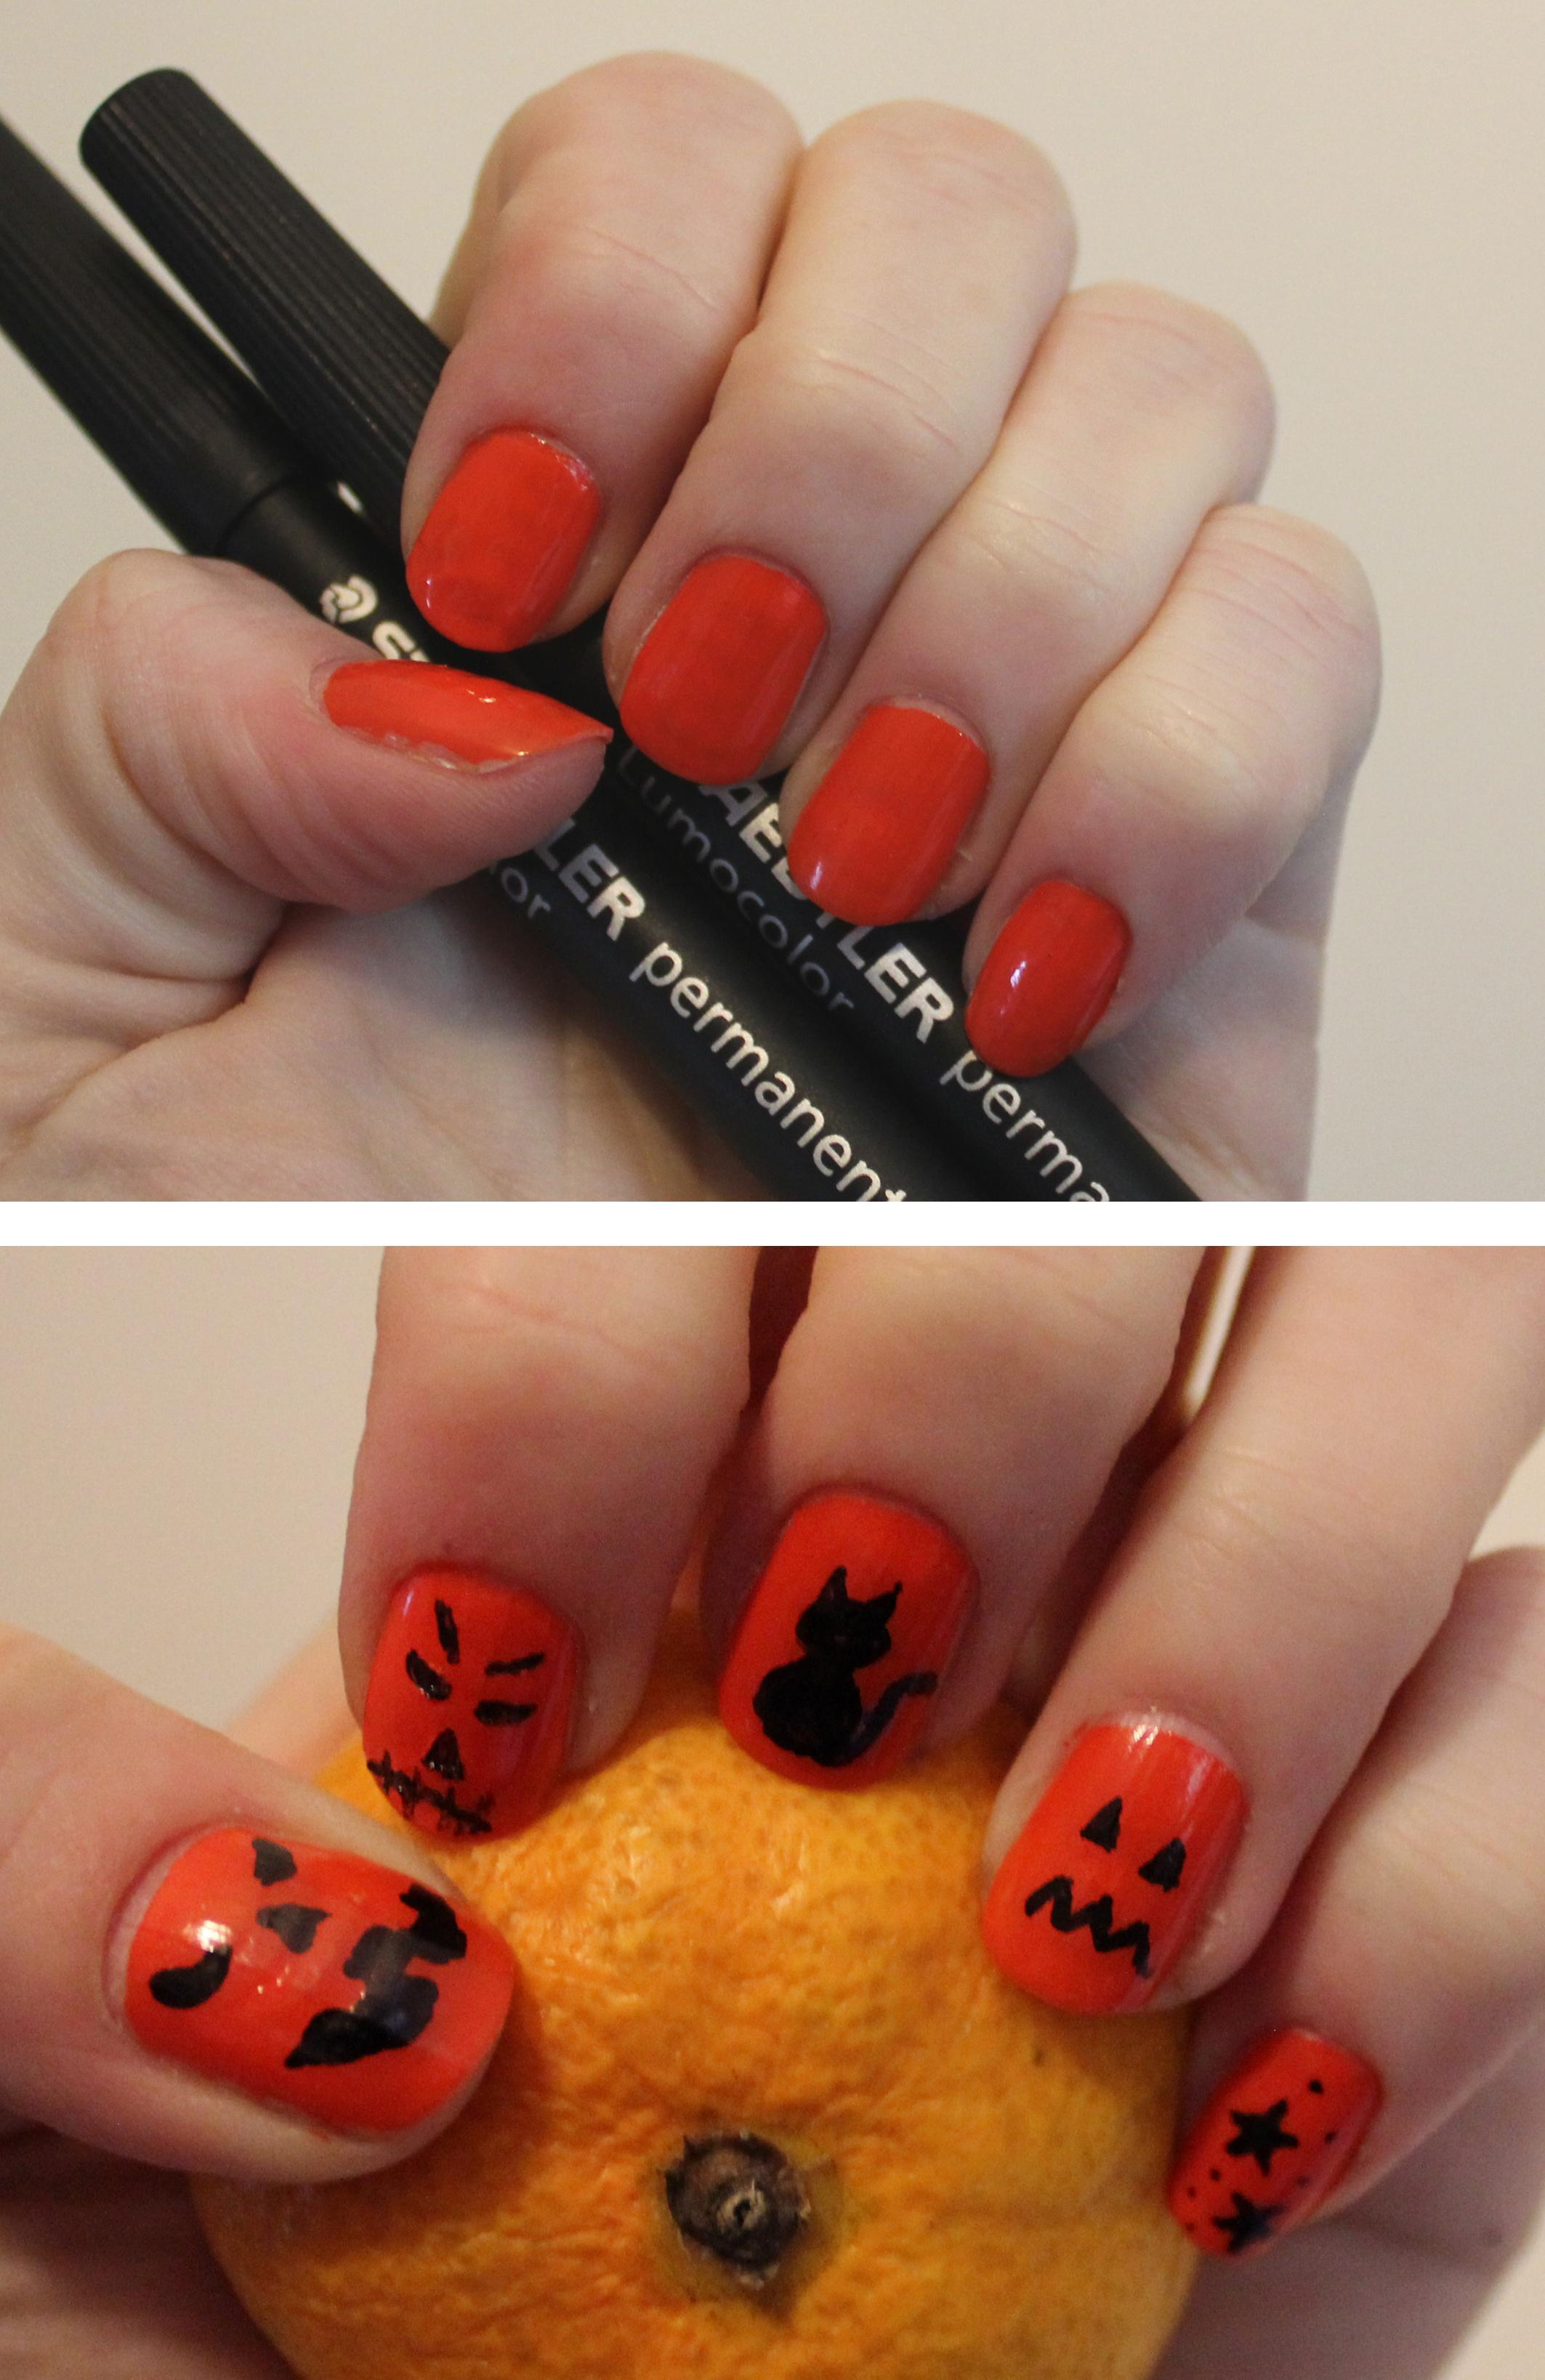 Spooky ideas for DIY Halloween nail art on easy nail polish design, easy neon nail designs, easy nail designs for beginners, awesome easy nail designs, diy easy butterfly nail designs, easy do yourself nail designs, easy to do art, quick and easy nail designs, easy to do tattoo designs, easy to do nail designs for short nails, easy to do toenail designs, easy zebra nail designs, easy flower nail designs step by step,